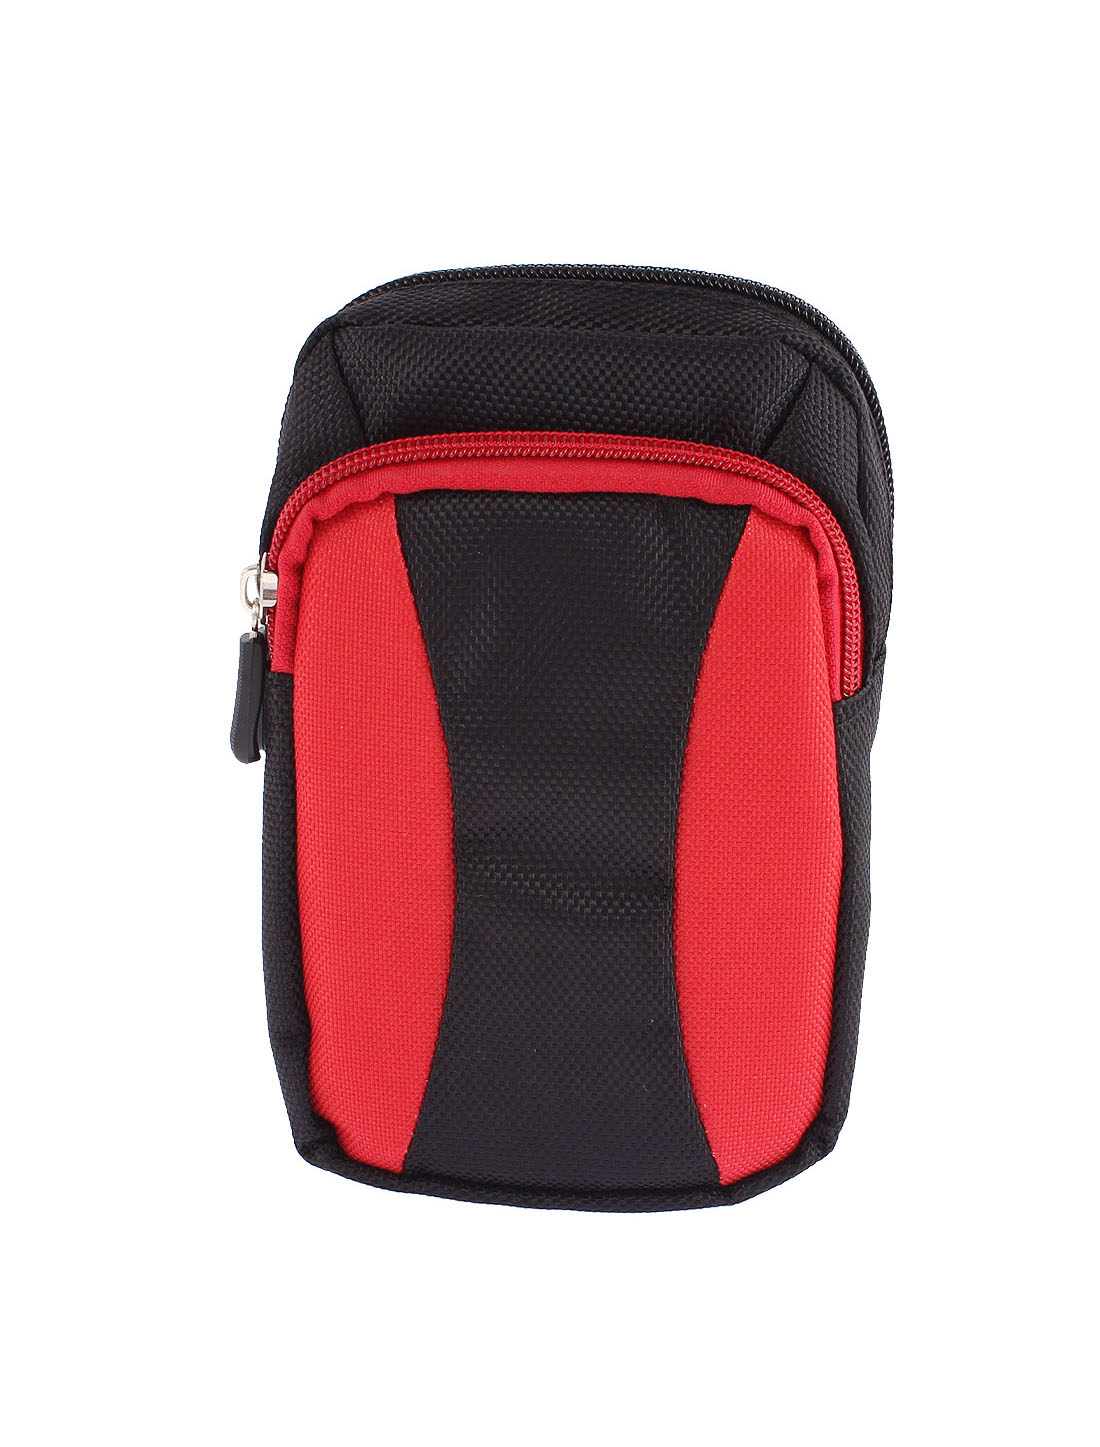 Travel Running Polyester Zippered Waist Bag Pocket Wallet Red 16cm Length